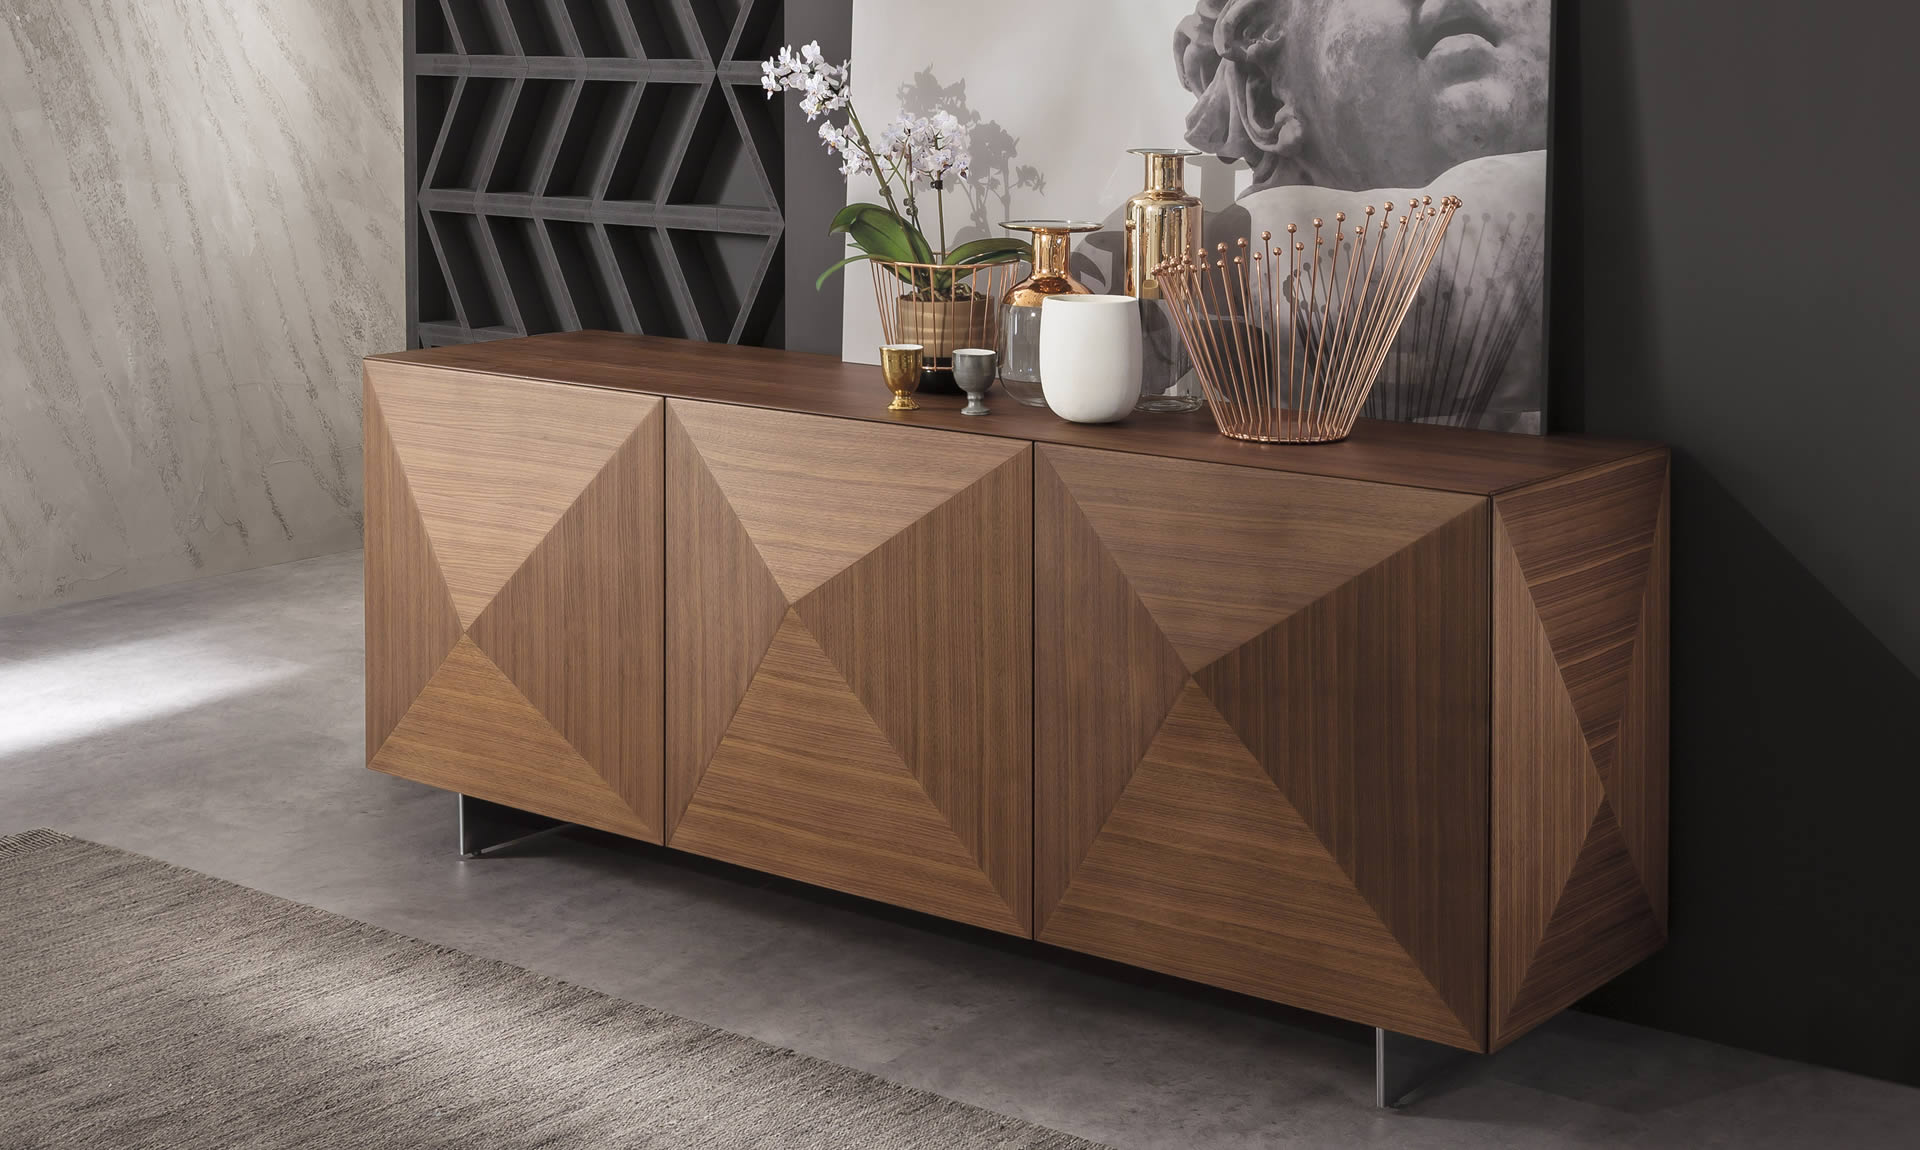 Modern Italian Design sideboard by Riflessi-c_wood_1